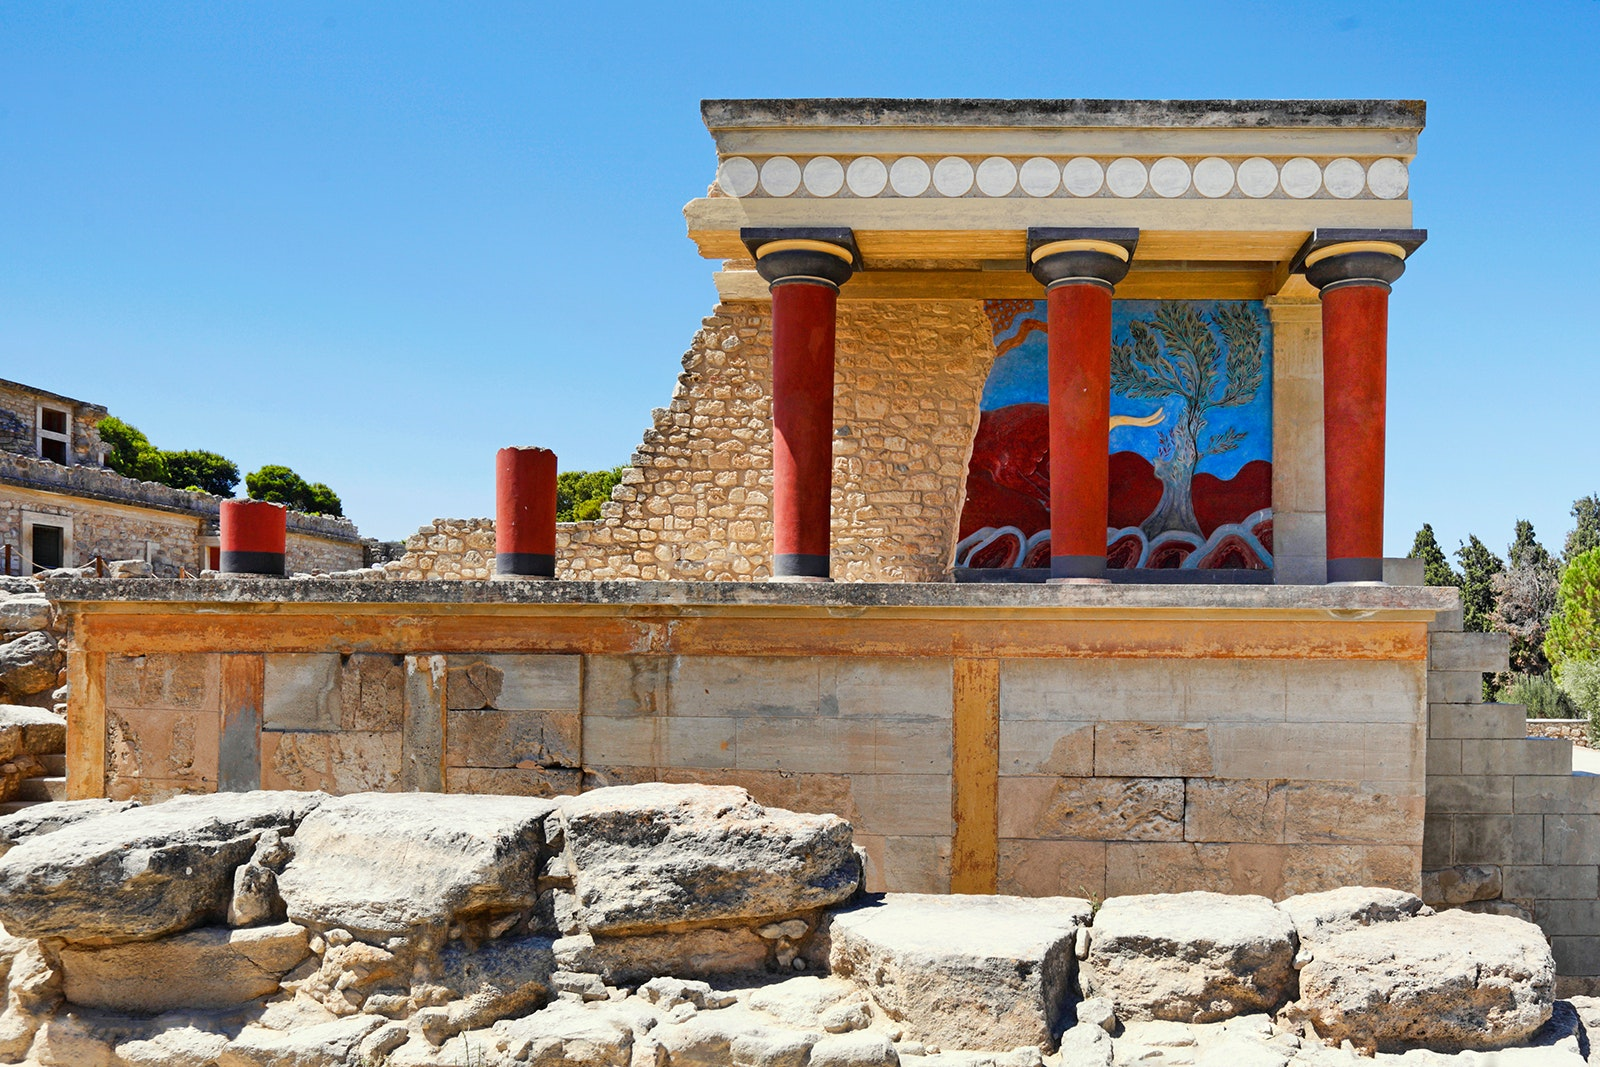 The Palace of the Minoans in Knossos